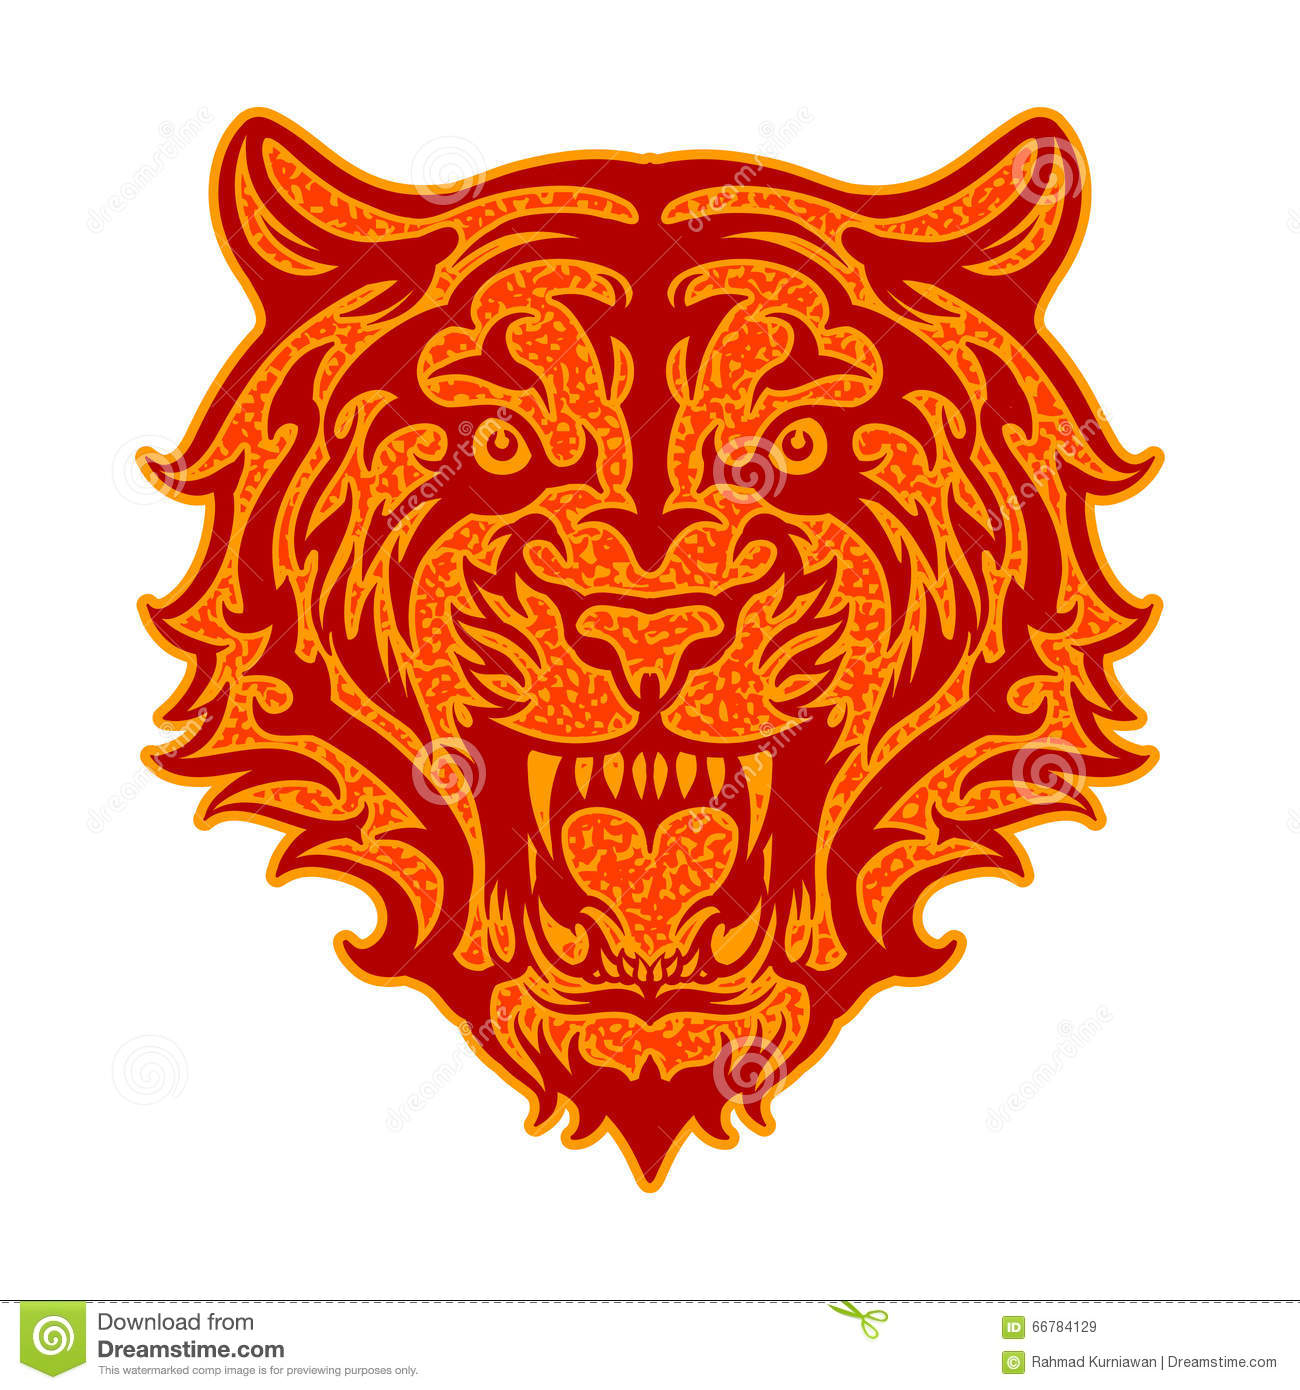 Tiger roar vector - photo#17